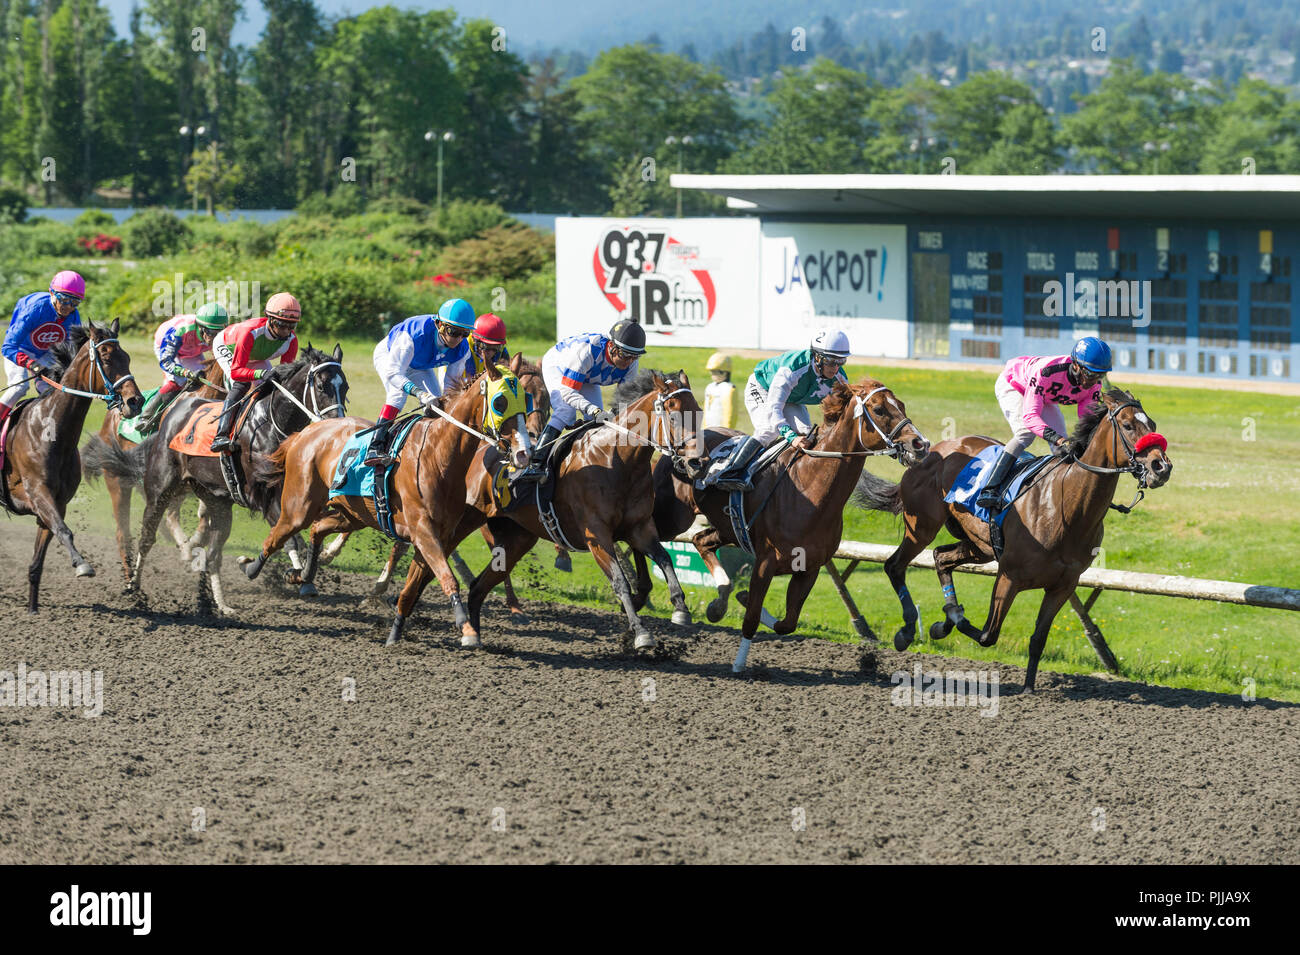 Jockeys and Horses racing at Hastings Park Racetrack, Vancouver - Stock Image